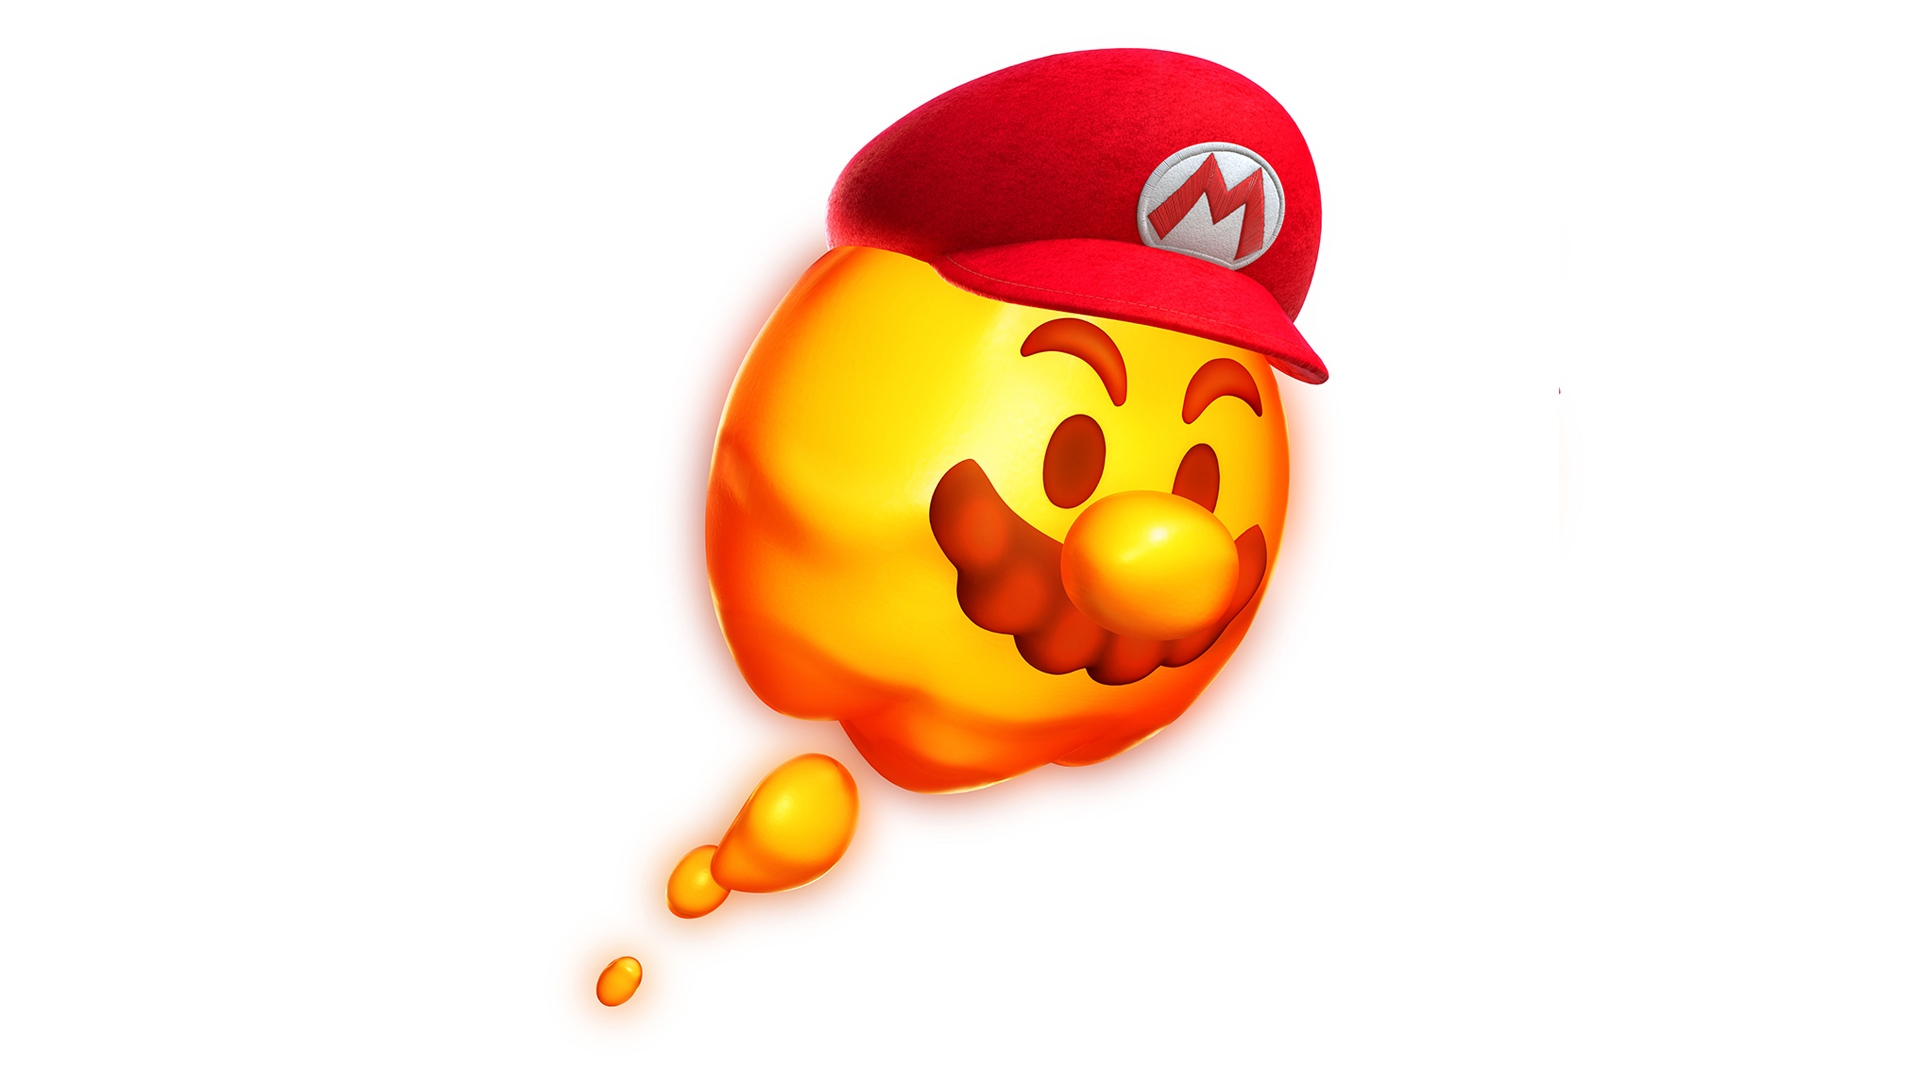 Mario Iphone Wallpaper Hd Super Mario Odyssey Wallpapers Pictures Images